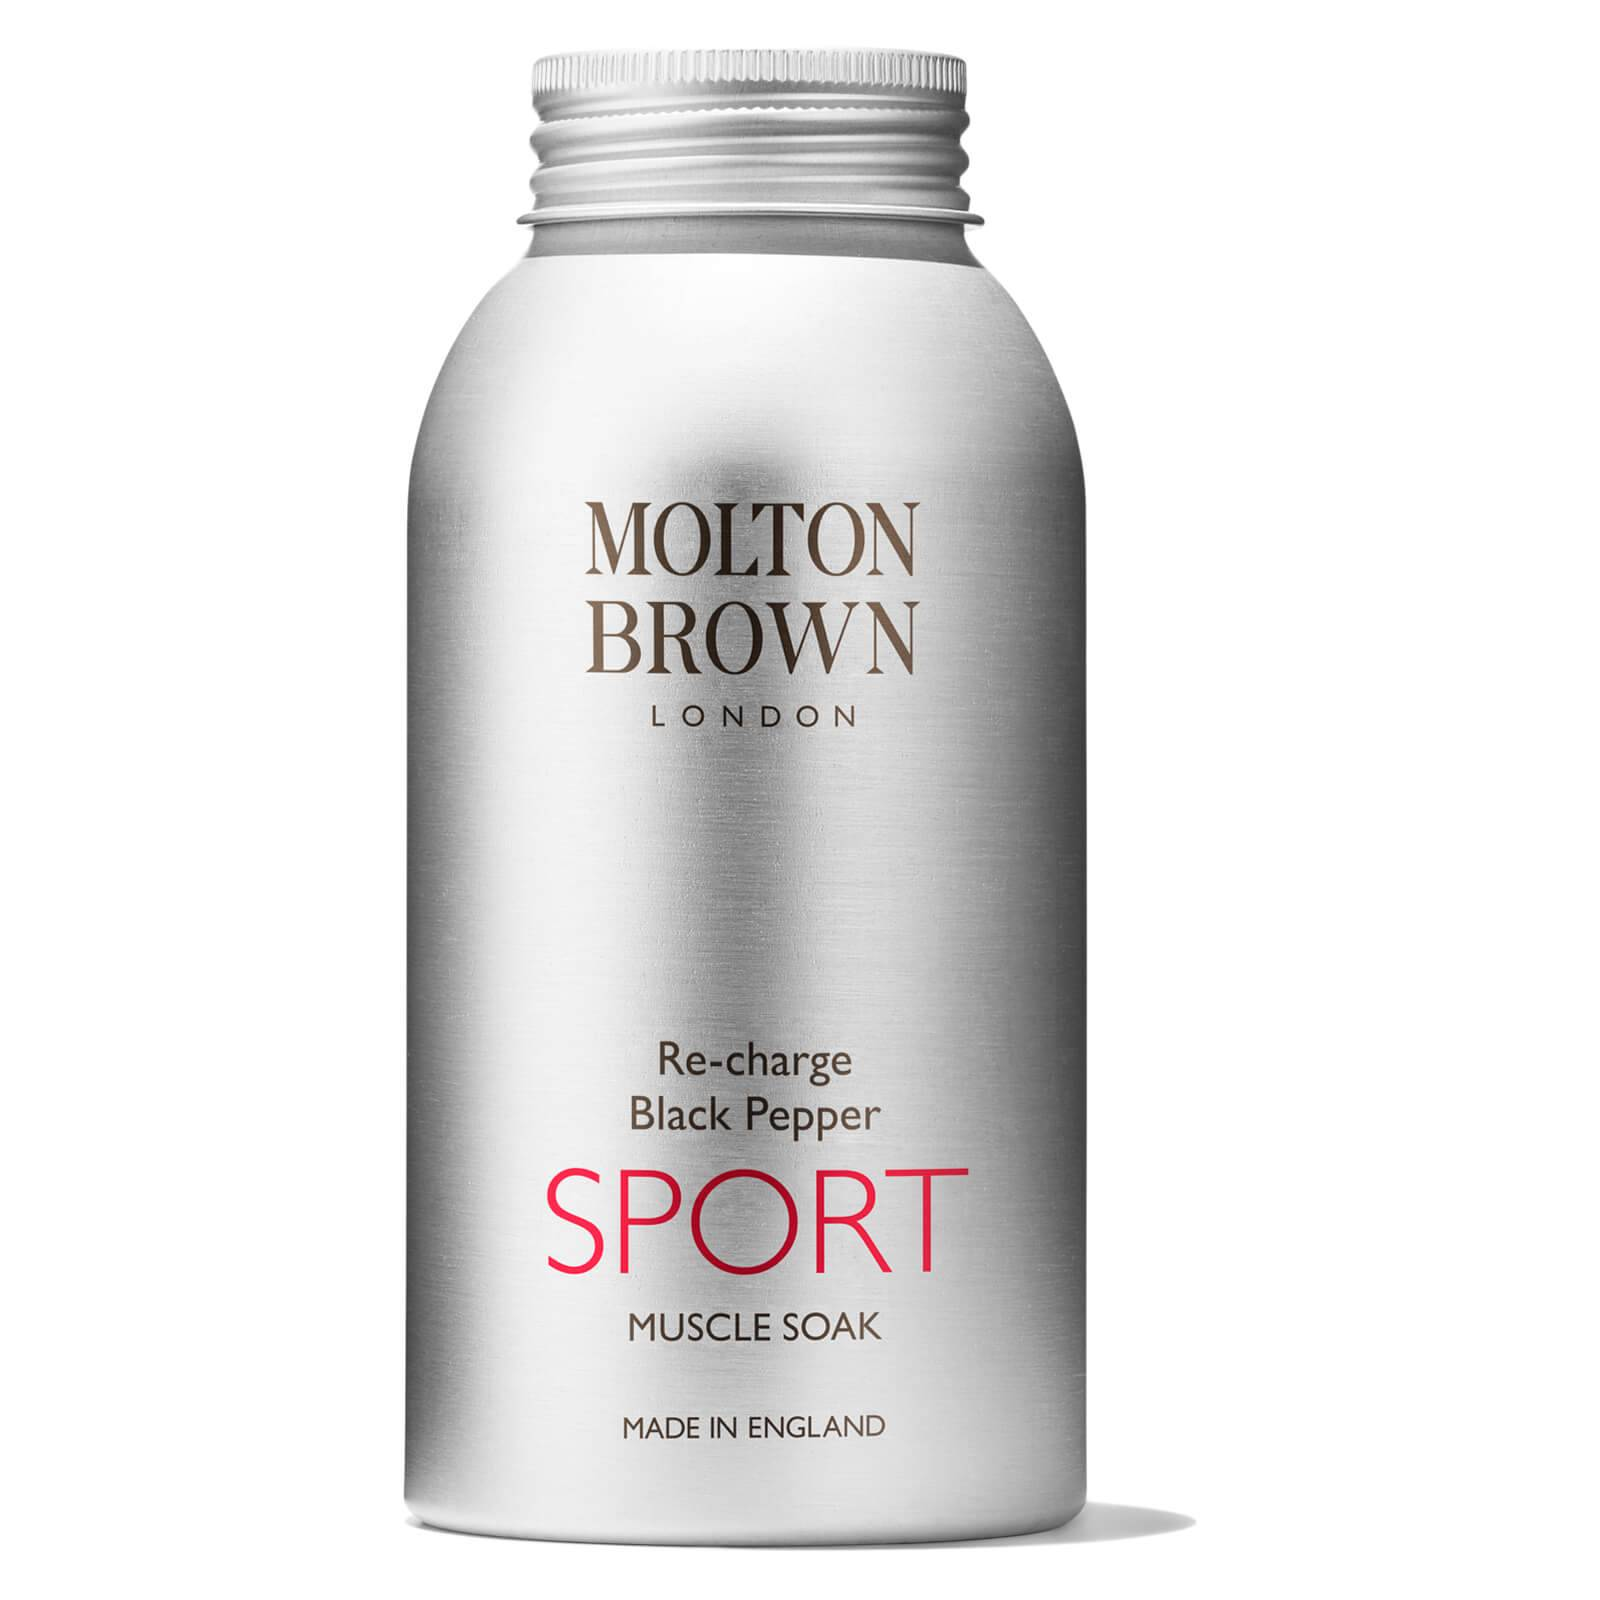 Molton Brown Re-Charge Black Pepper SPORT Muscle Soak (300g)